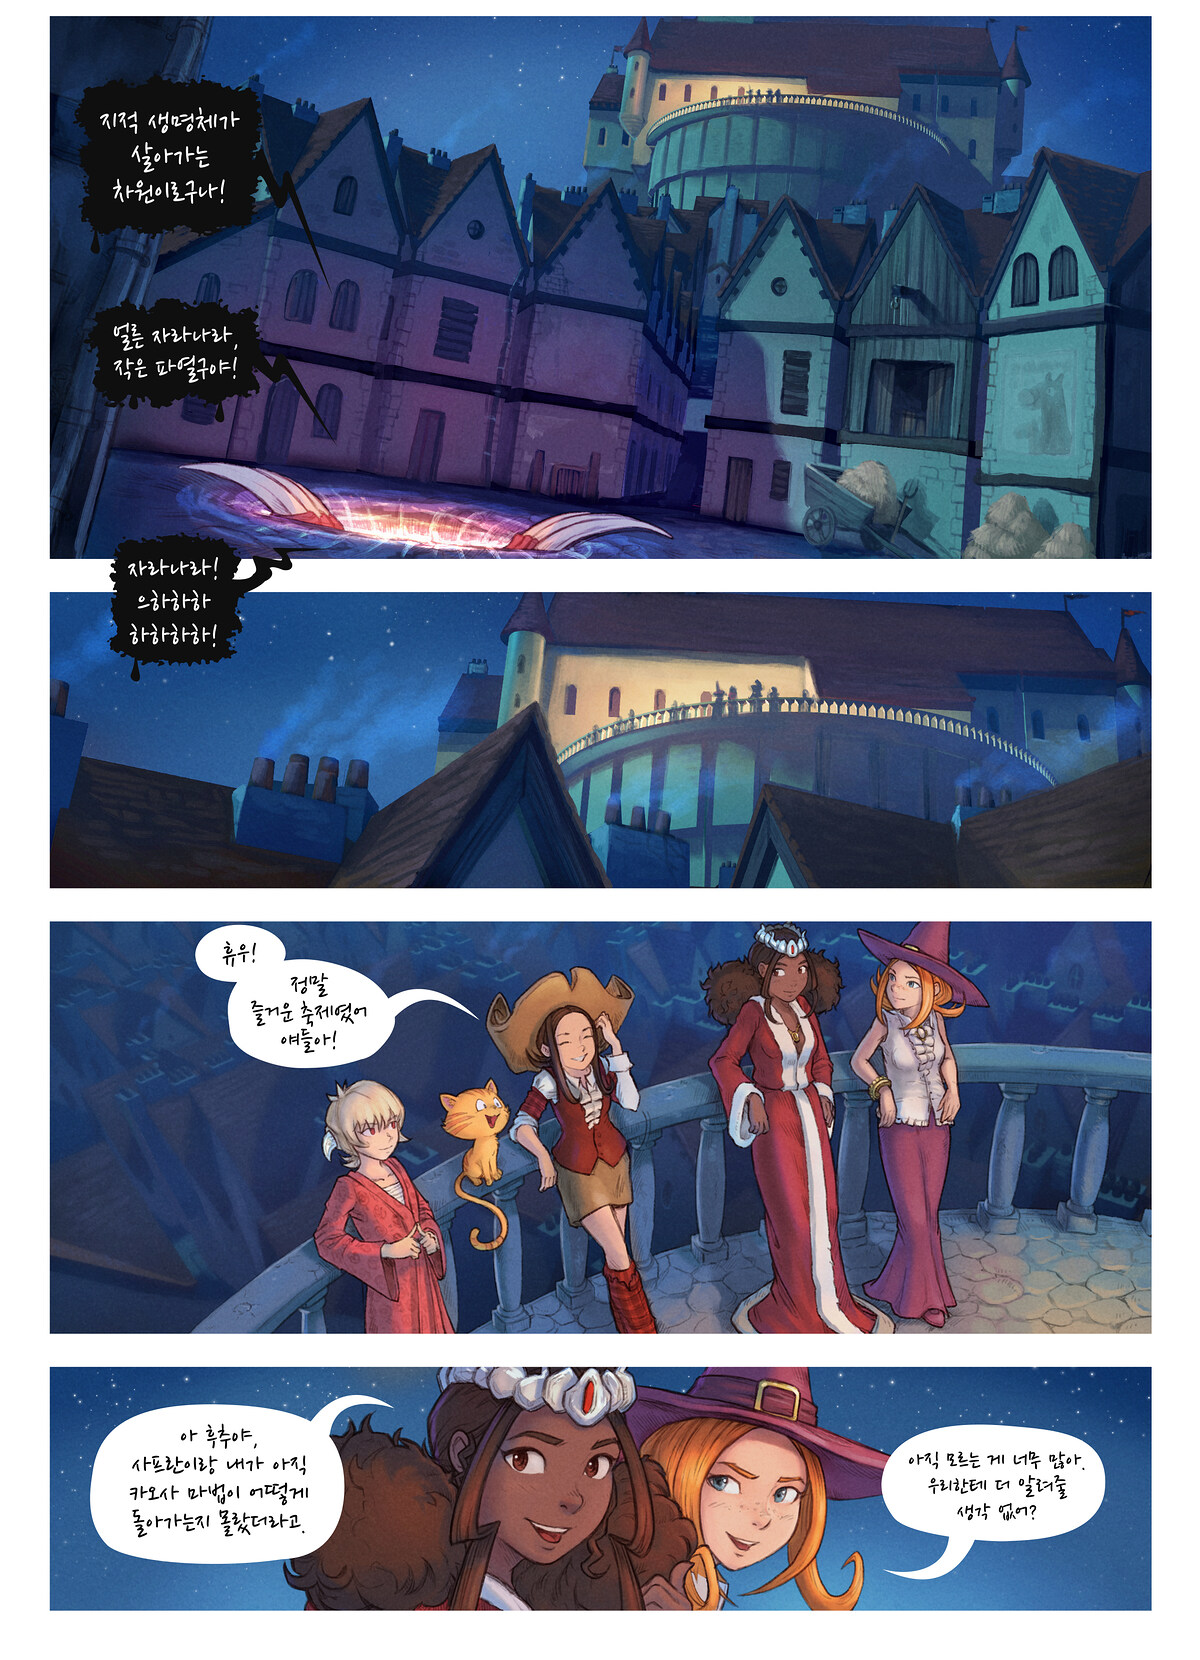 A webcomic page of Pepper&Carrot, 에피소드 29 [kr], 페이지 2